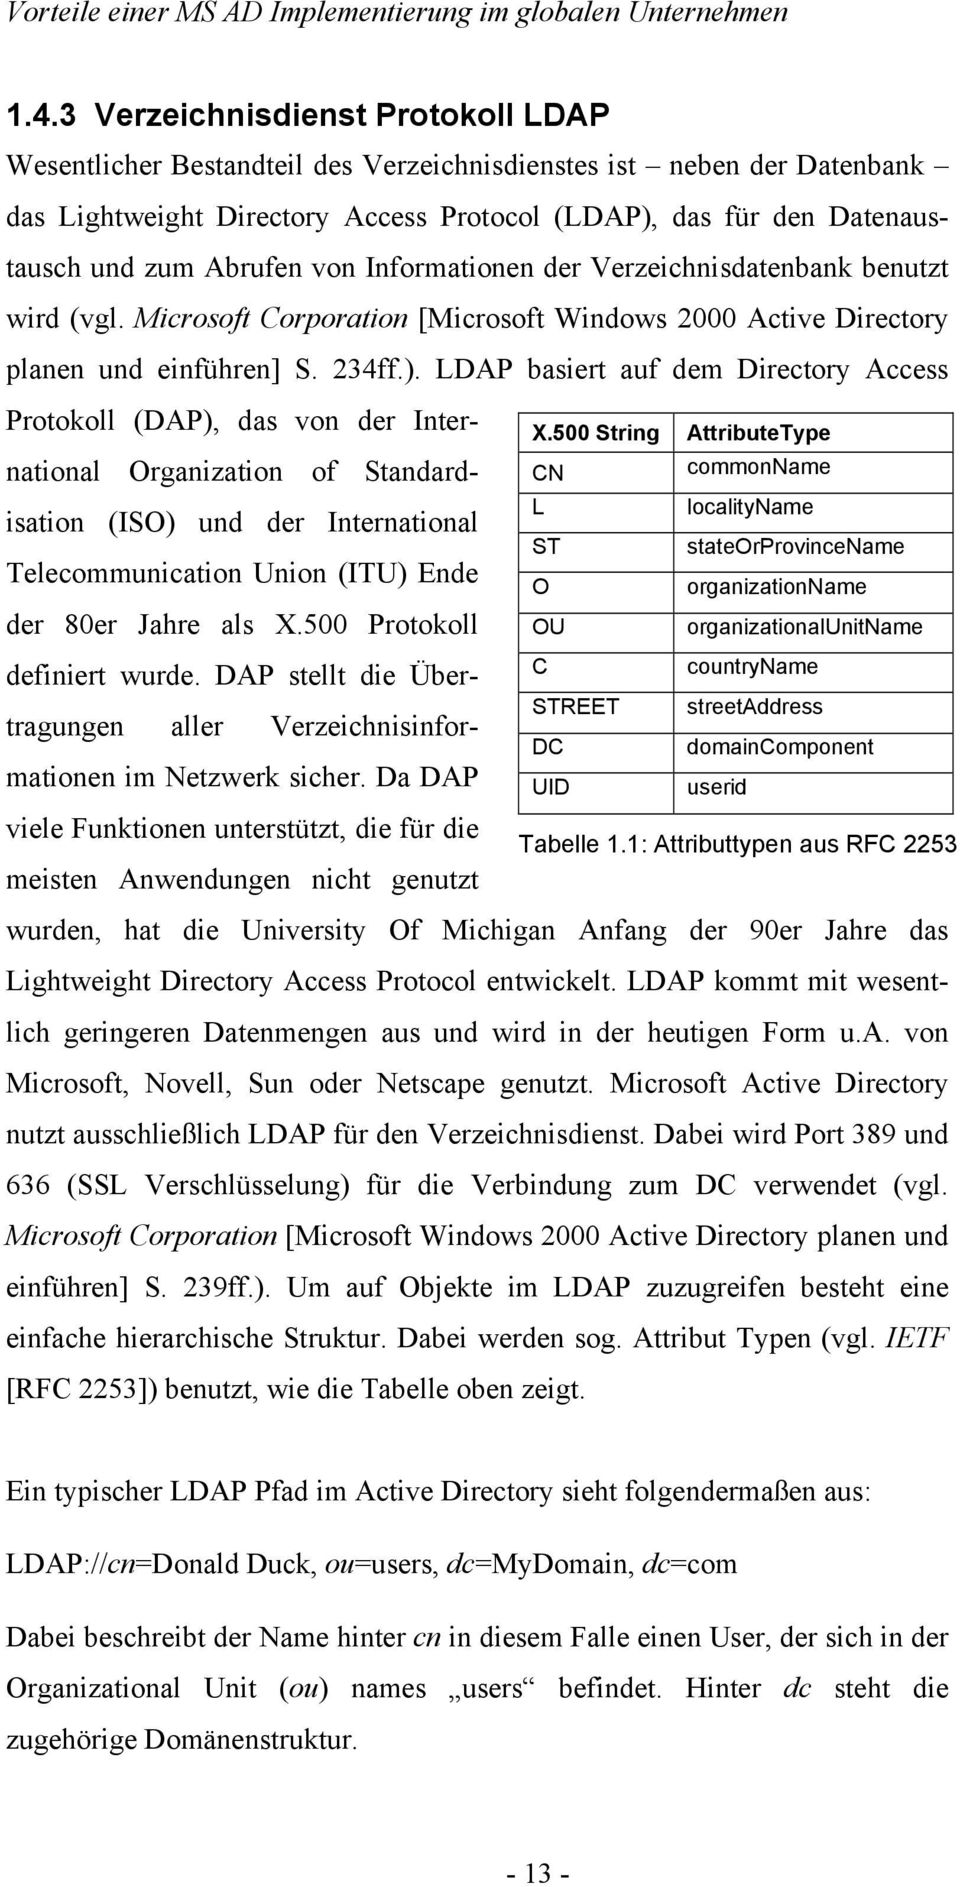 LDAP basiert auf dem Directory Access Protokoll (DAP), das von der International Organization of Standardisation (ISO) und der International Telecommunication Union (ITU) Ende der 80er Jahre als X.